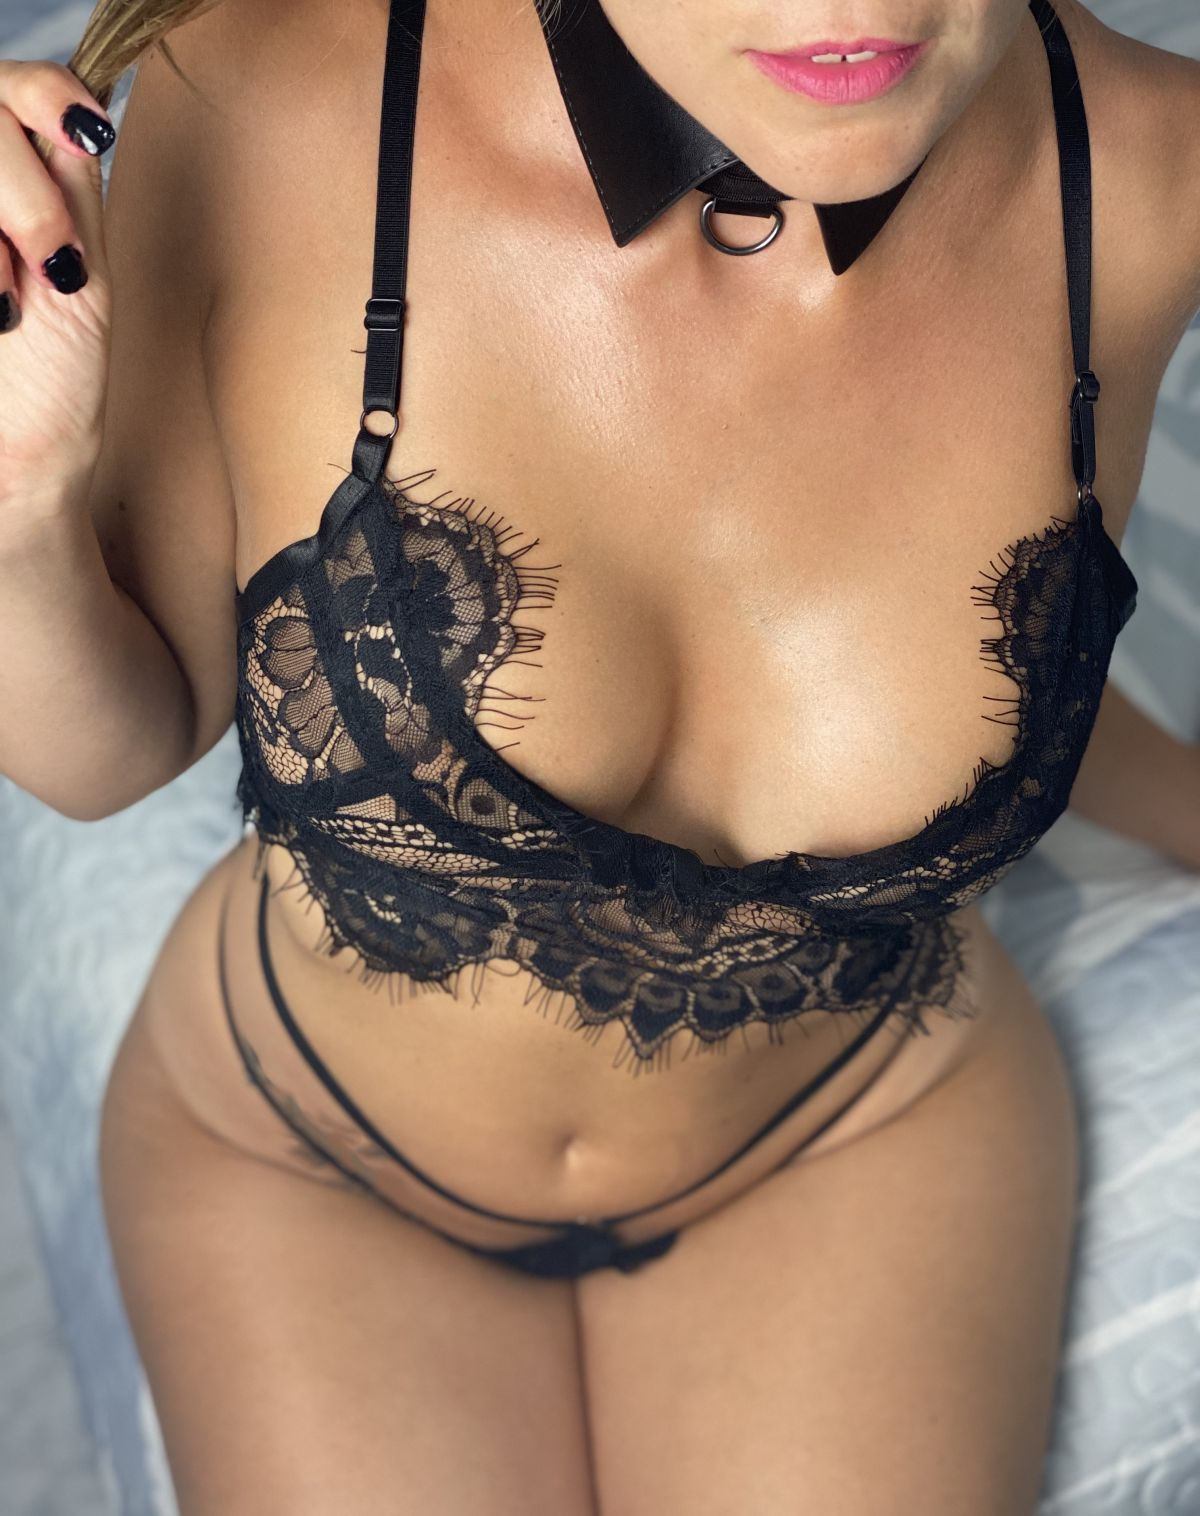 Onlyfans Claudia onlyfans leaked